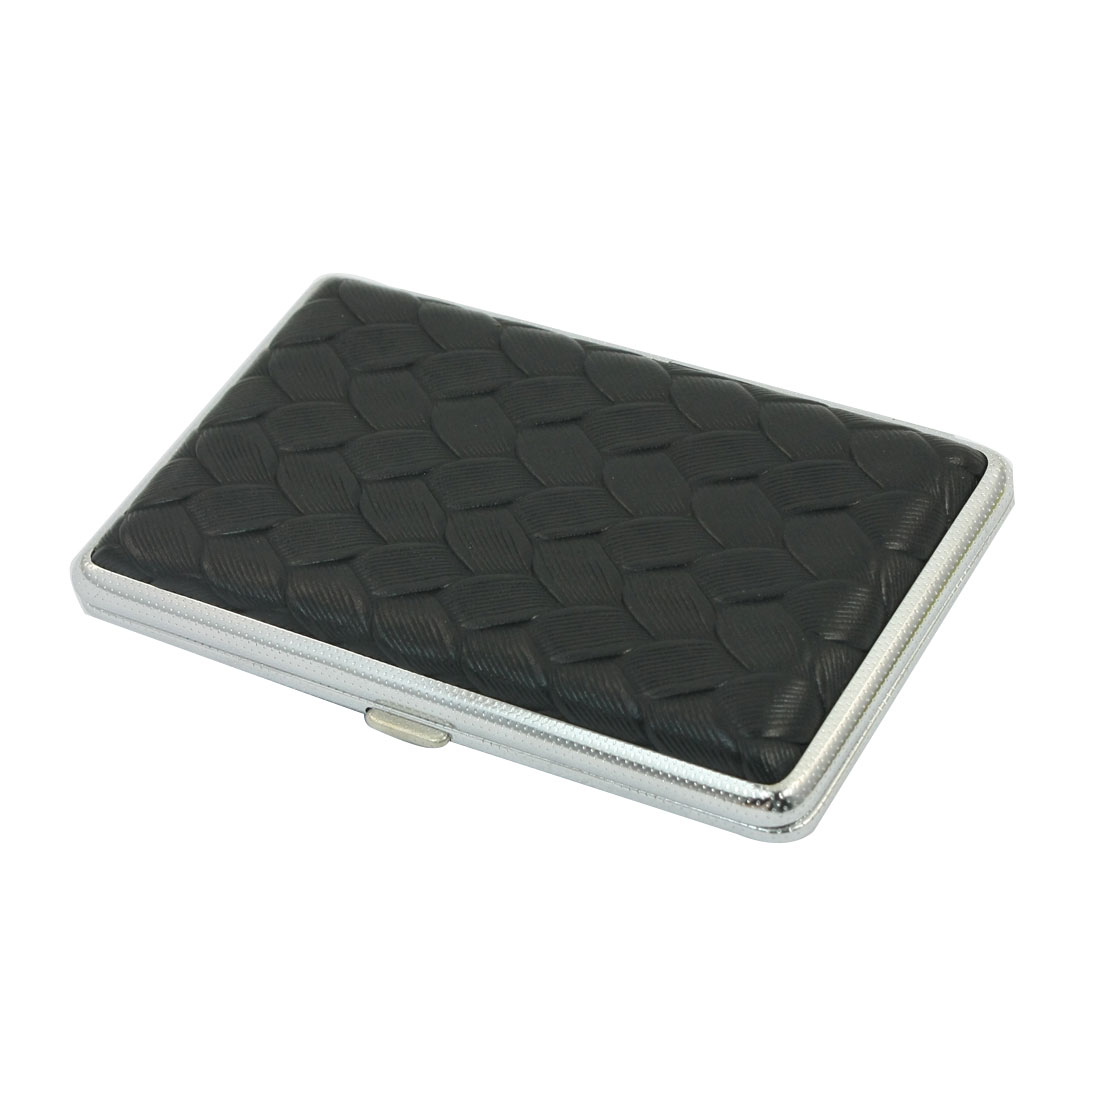 Black Rectangle Shape Woven Pattern Faux Leather Coated Two Sides Hinge Closure Metal Case Box Holder Container for 14pcs Cigarette